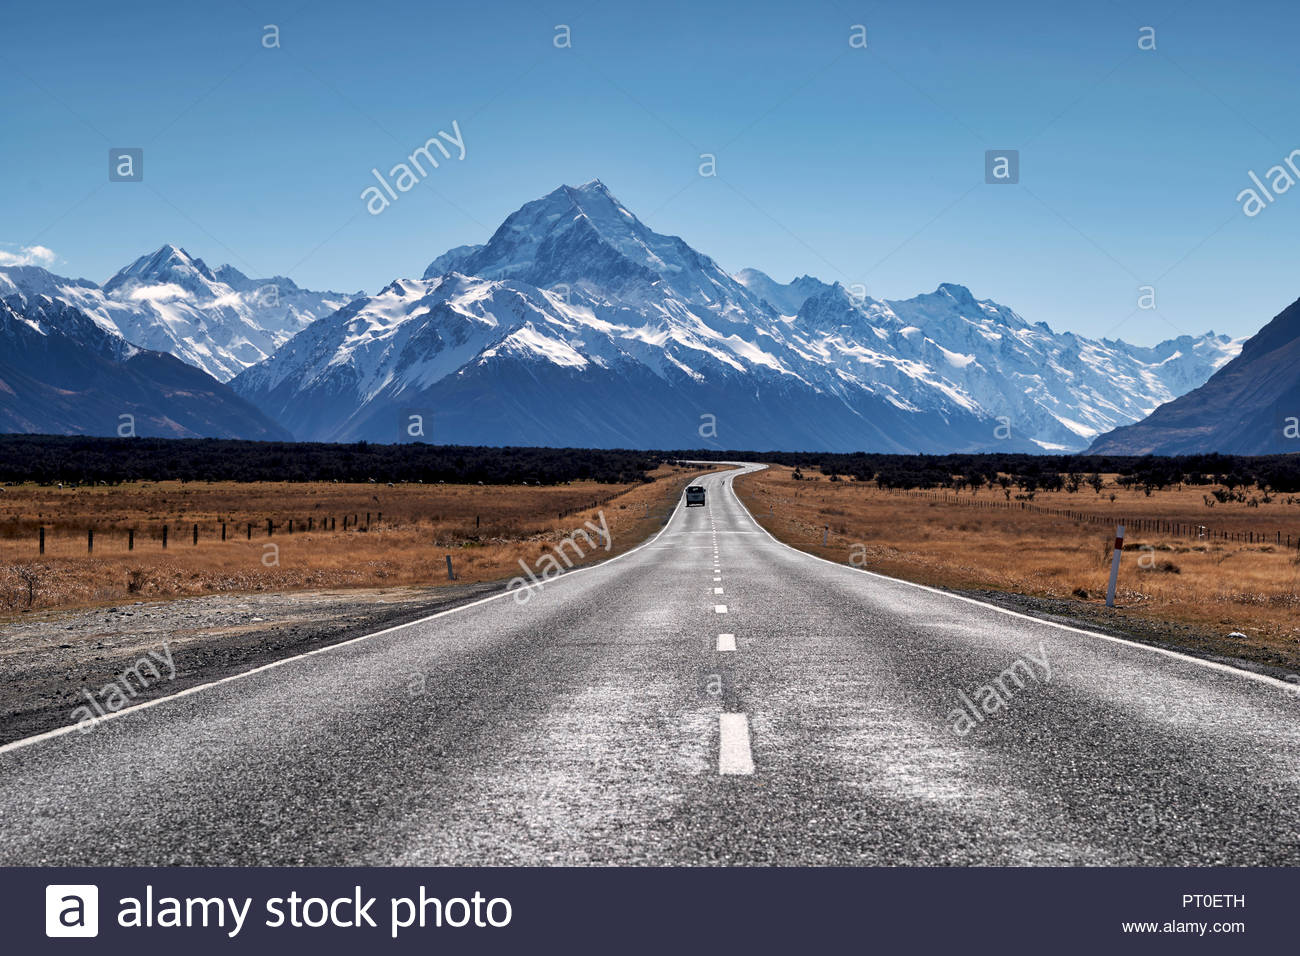 The road to Aoraki Mount Cook National Park. New Zealand - Stock Image